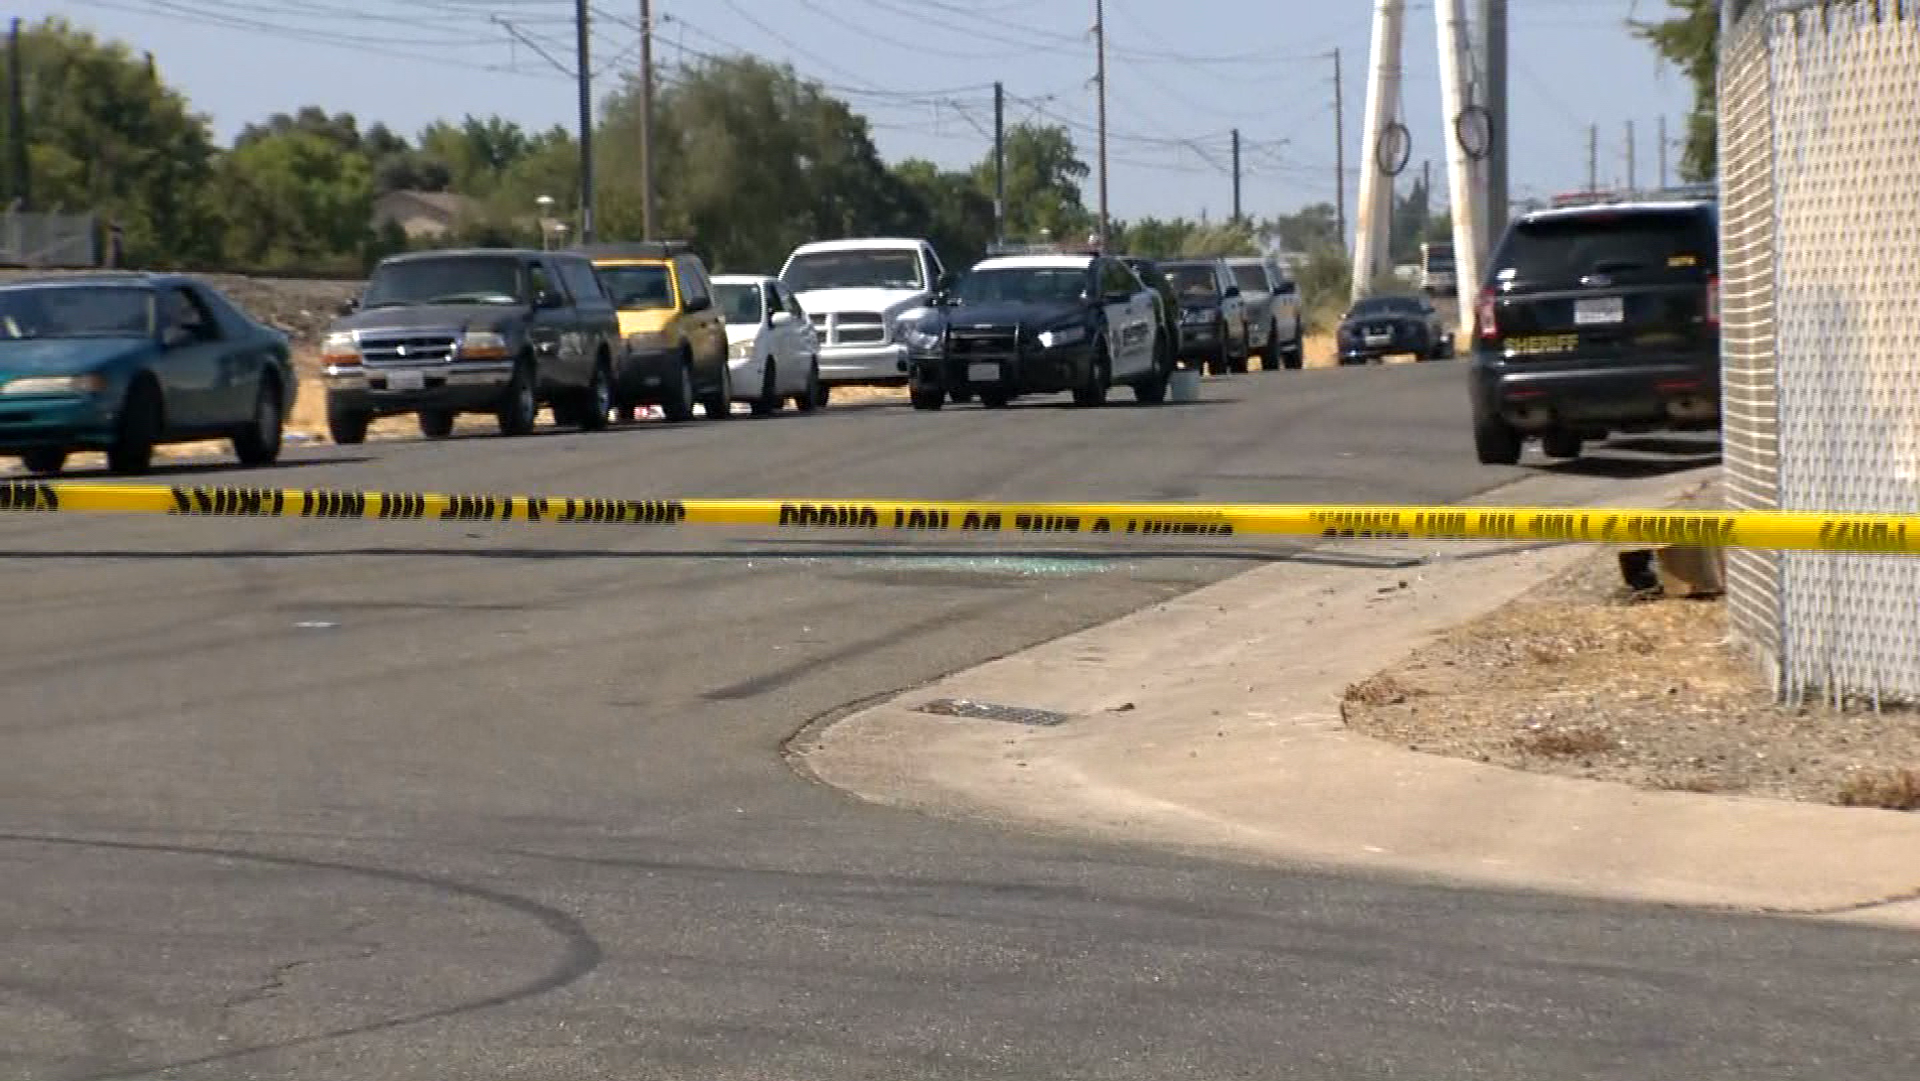 Deputies investigate a deadly shooting on Tuesday, Aug. 15, 2017, at an auto repair shop, the Sacramento County Sheriff's Department said.